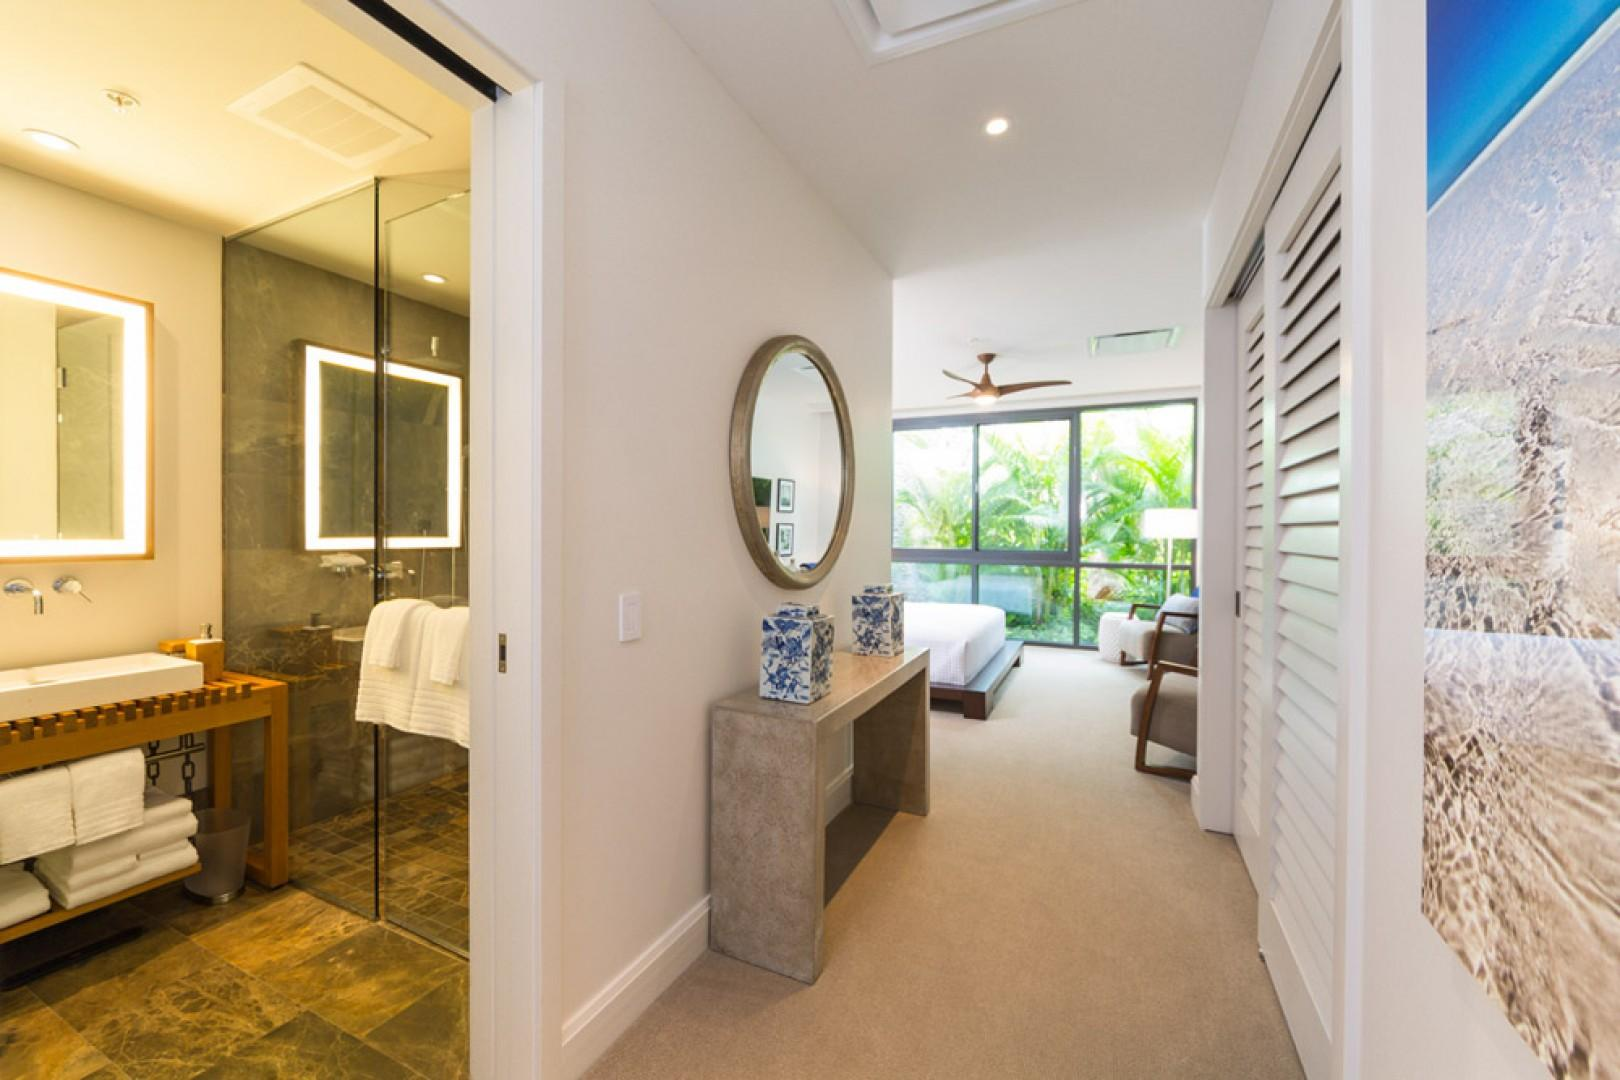 SeaGlass Villa 810 at Andaz Maui Wailea Resort - Entrance to the Second King Bedroom Suite with Original Art, Flat Panel HDTV with Netflix and En-Suite Private Bath